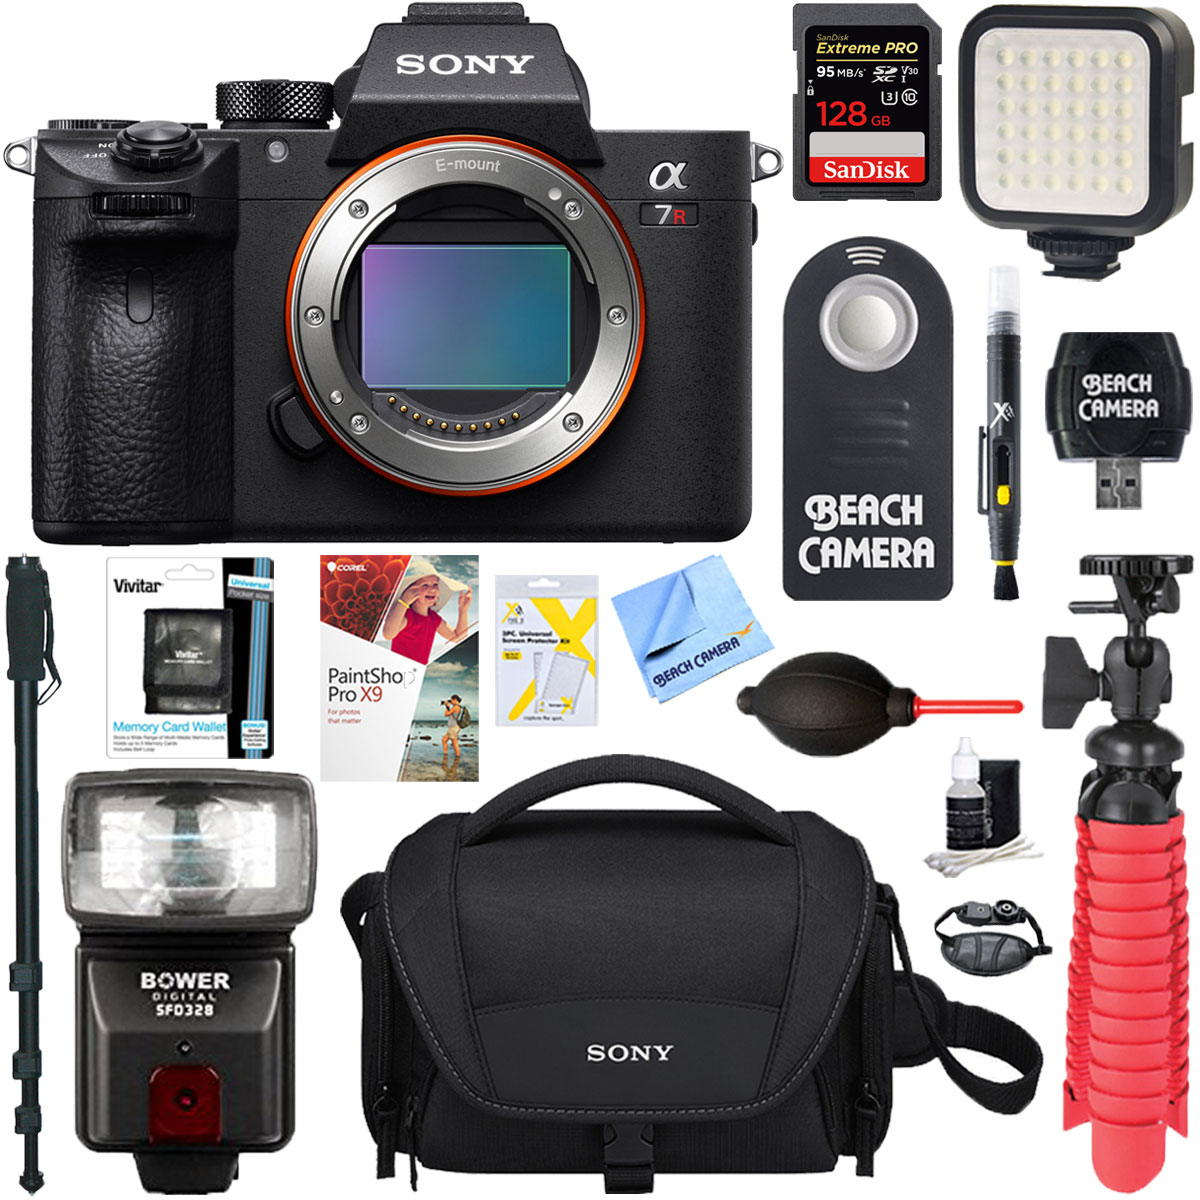 Sony a7R III 42.4MP Full-frame Mirrorless Interchangeable Lens Camera Body + 64GB Memory & Flash a7RIII Accessory Bundle